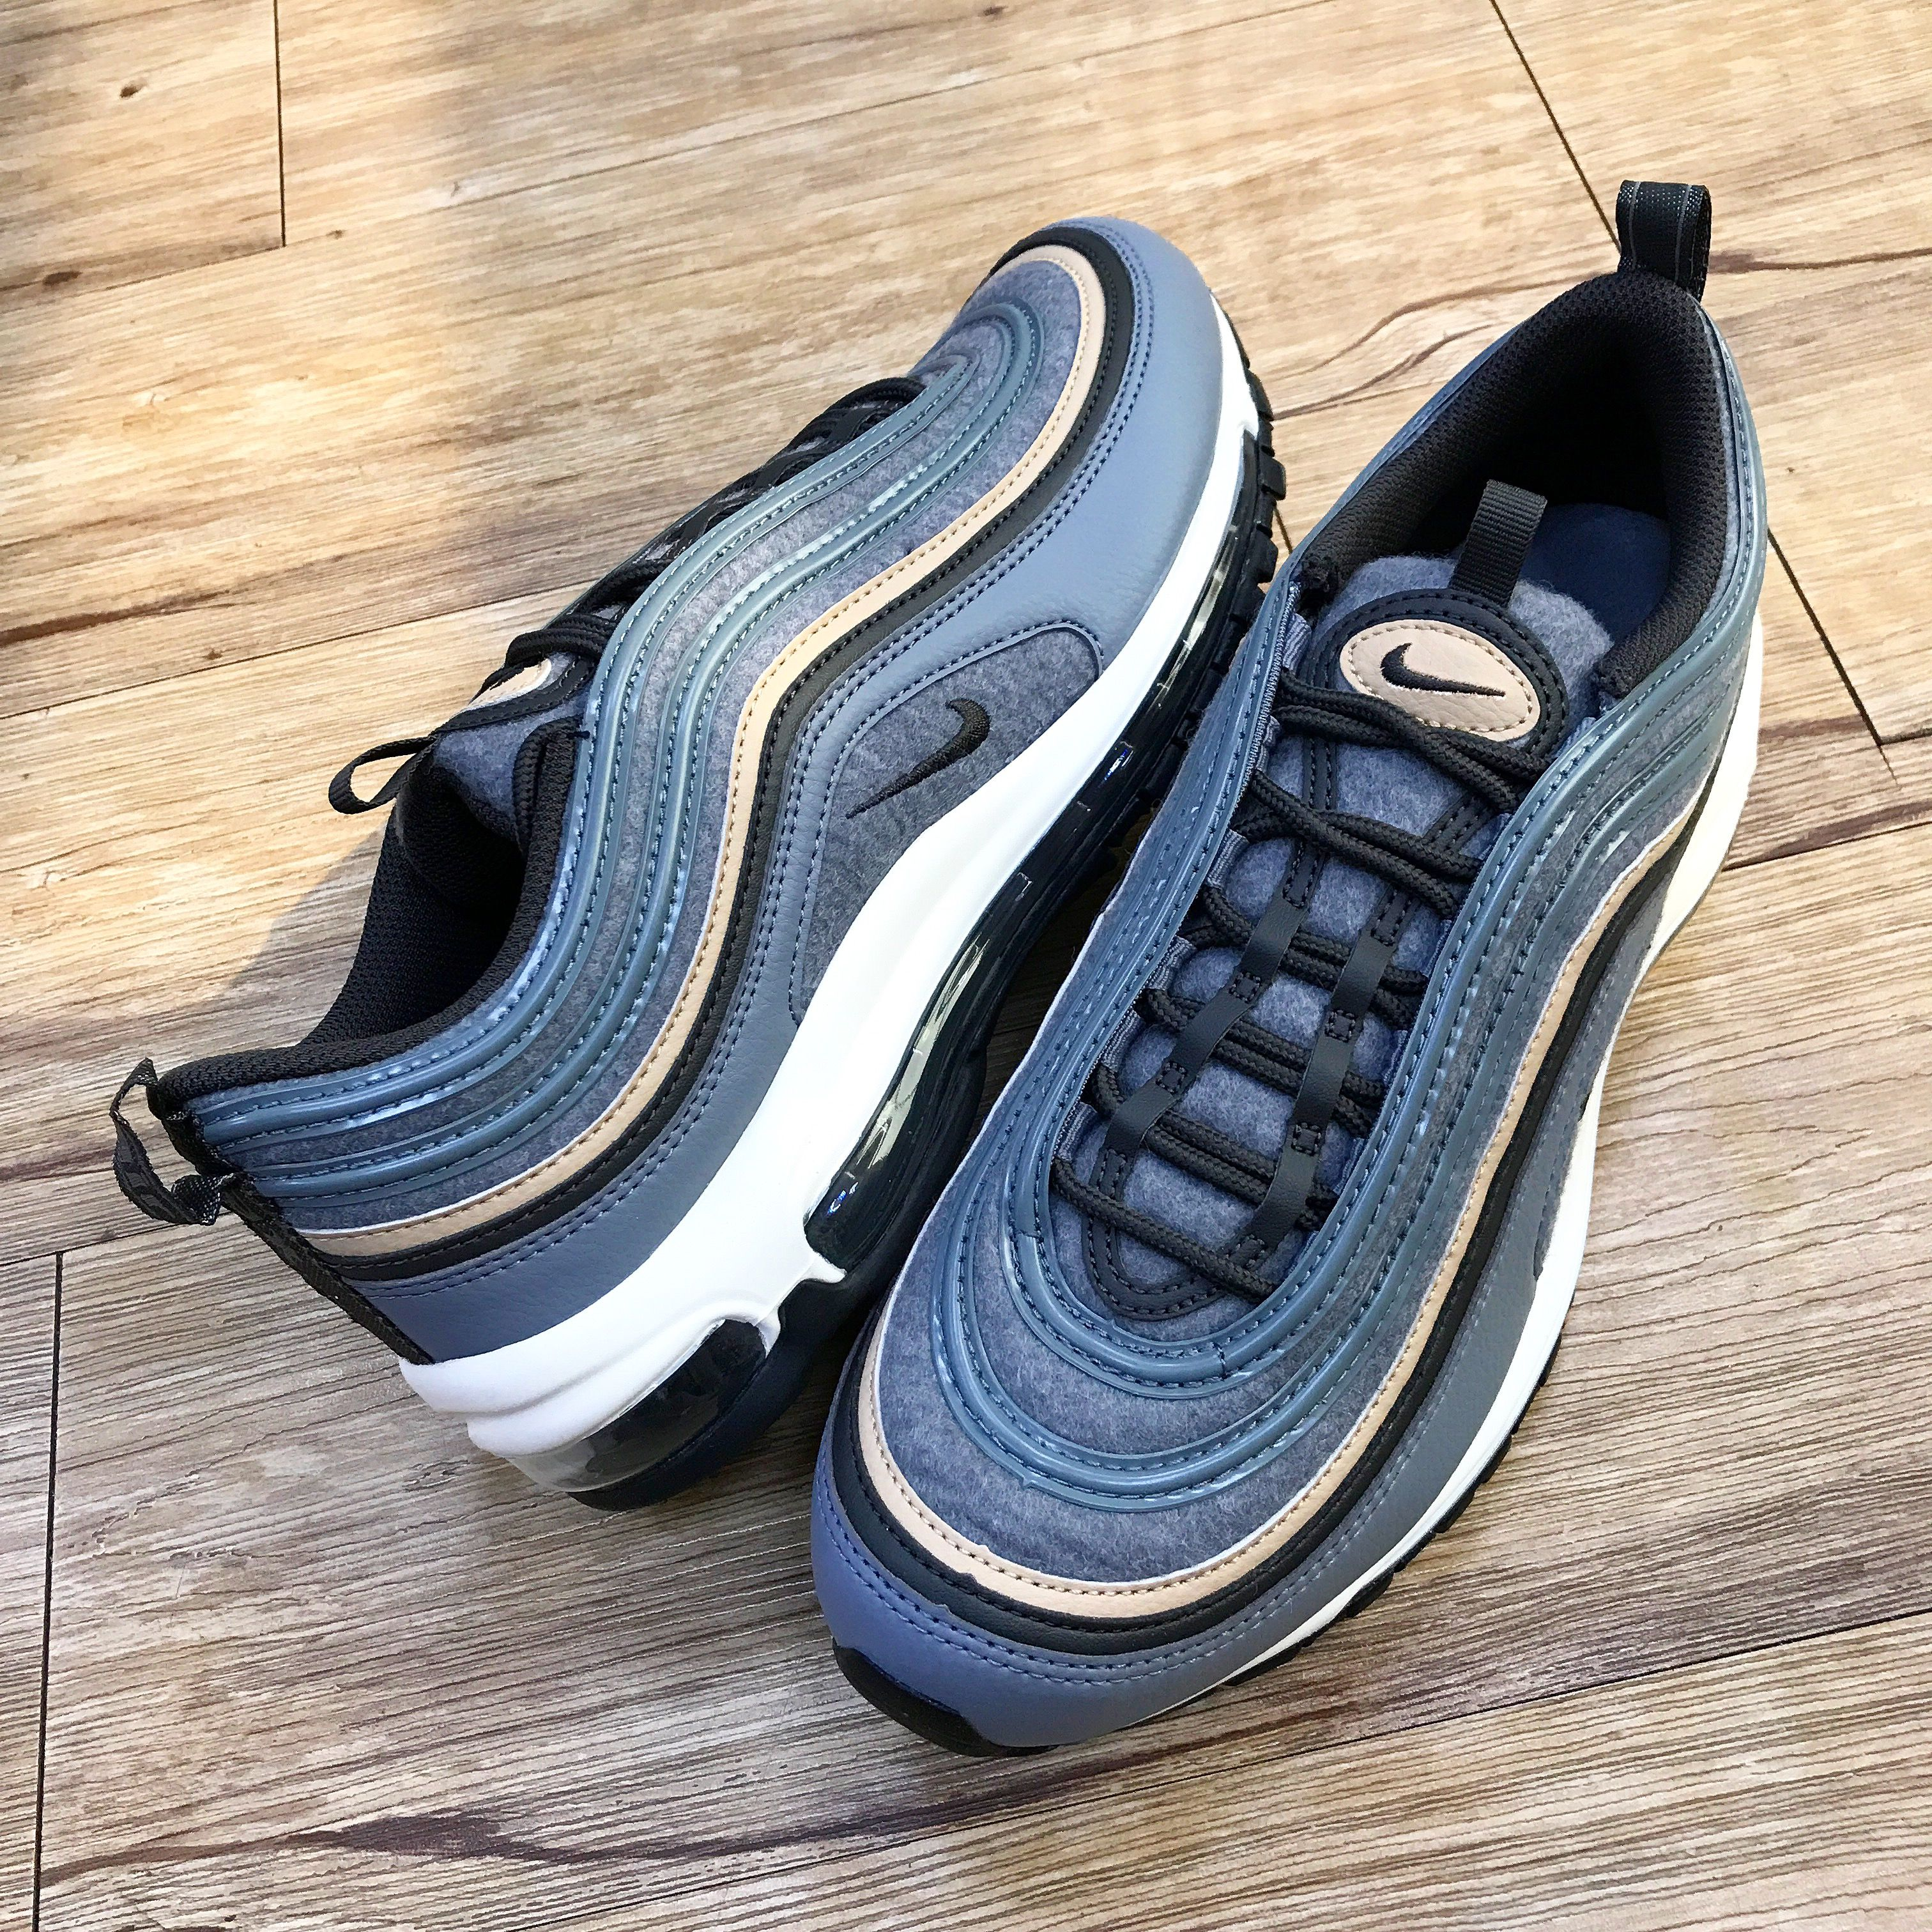 Details about Mens Nike Air Max 97 Premium 312834 003 Cool